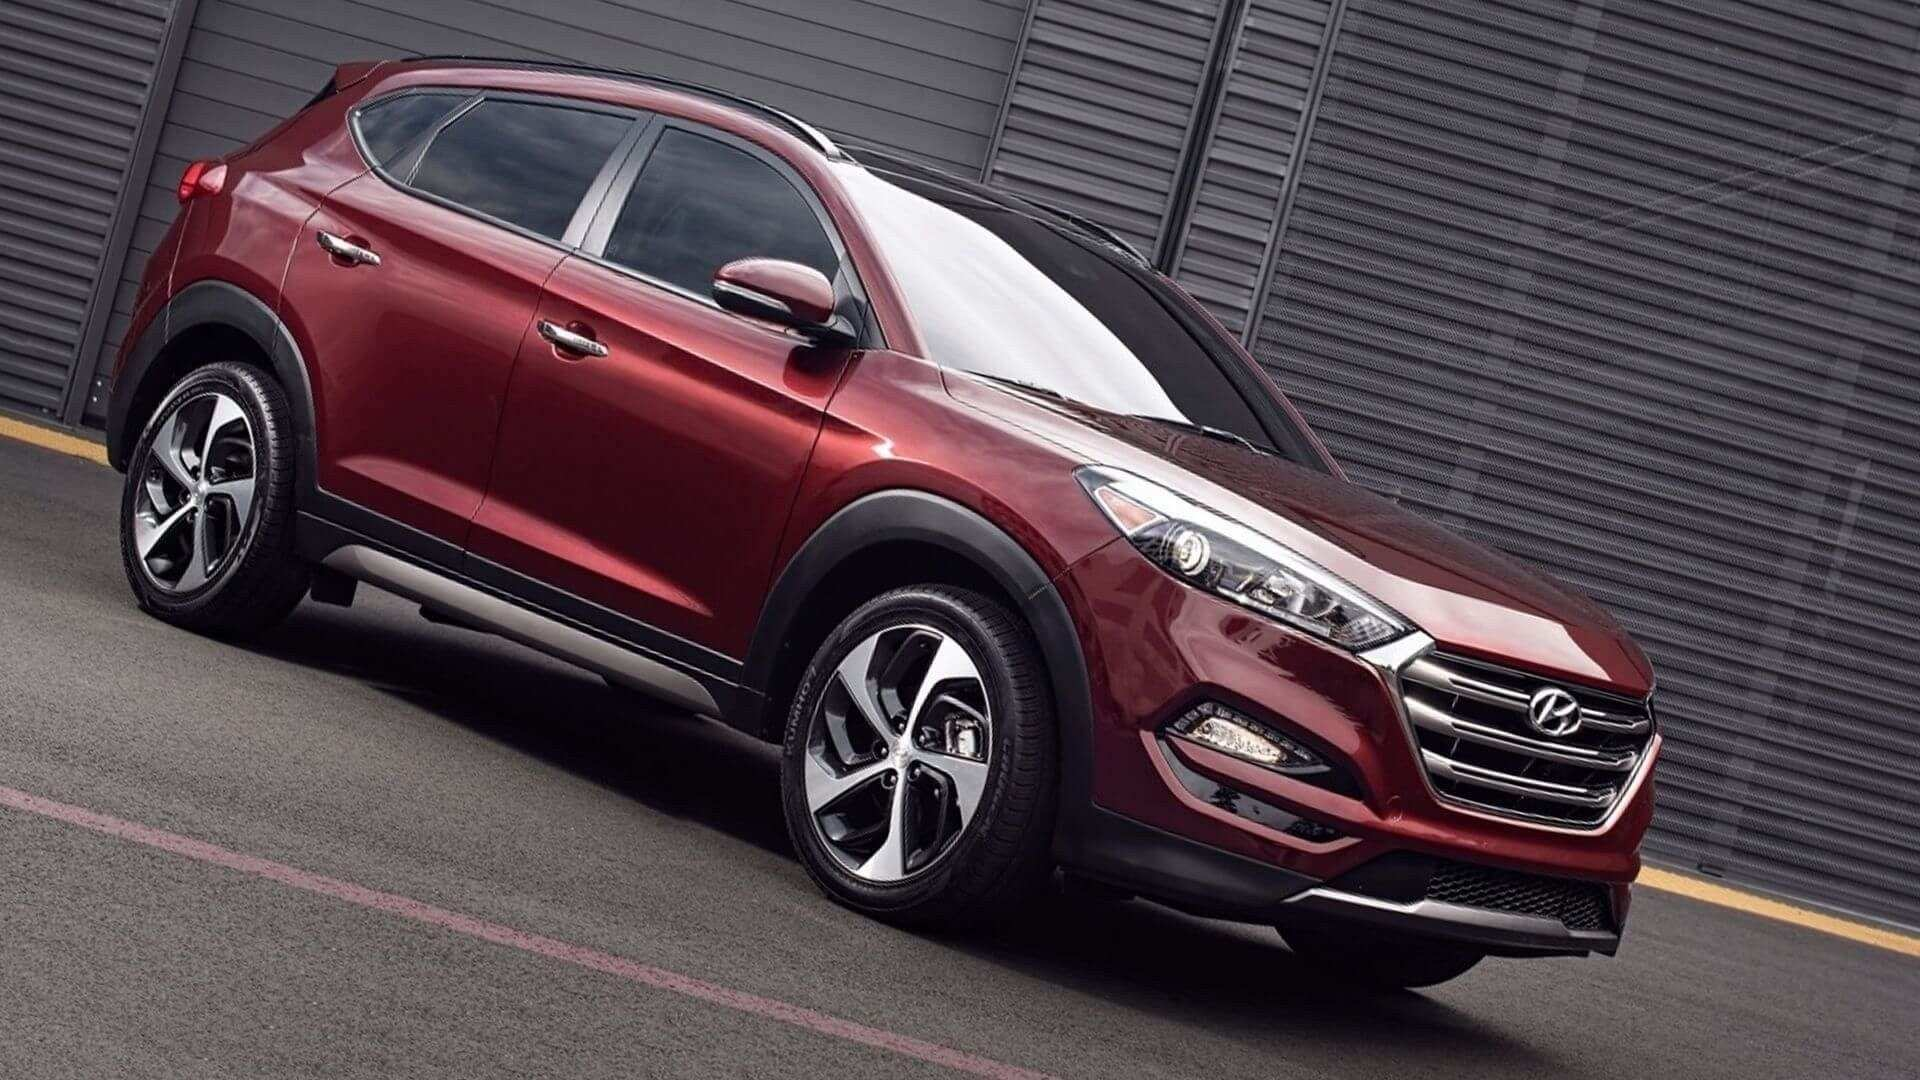 35 All New When Does The 2020 Hyundai Tucson Come Out Concept by When Does The 2020 Hyundai Tucson Come Out